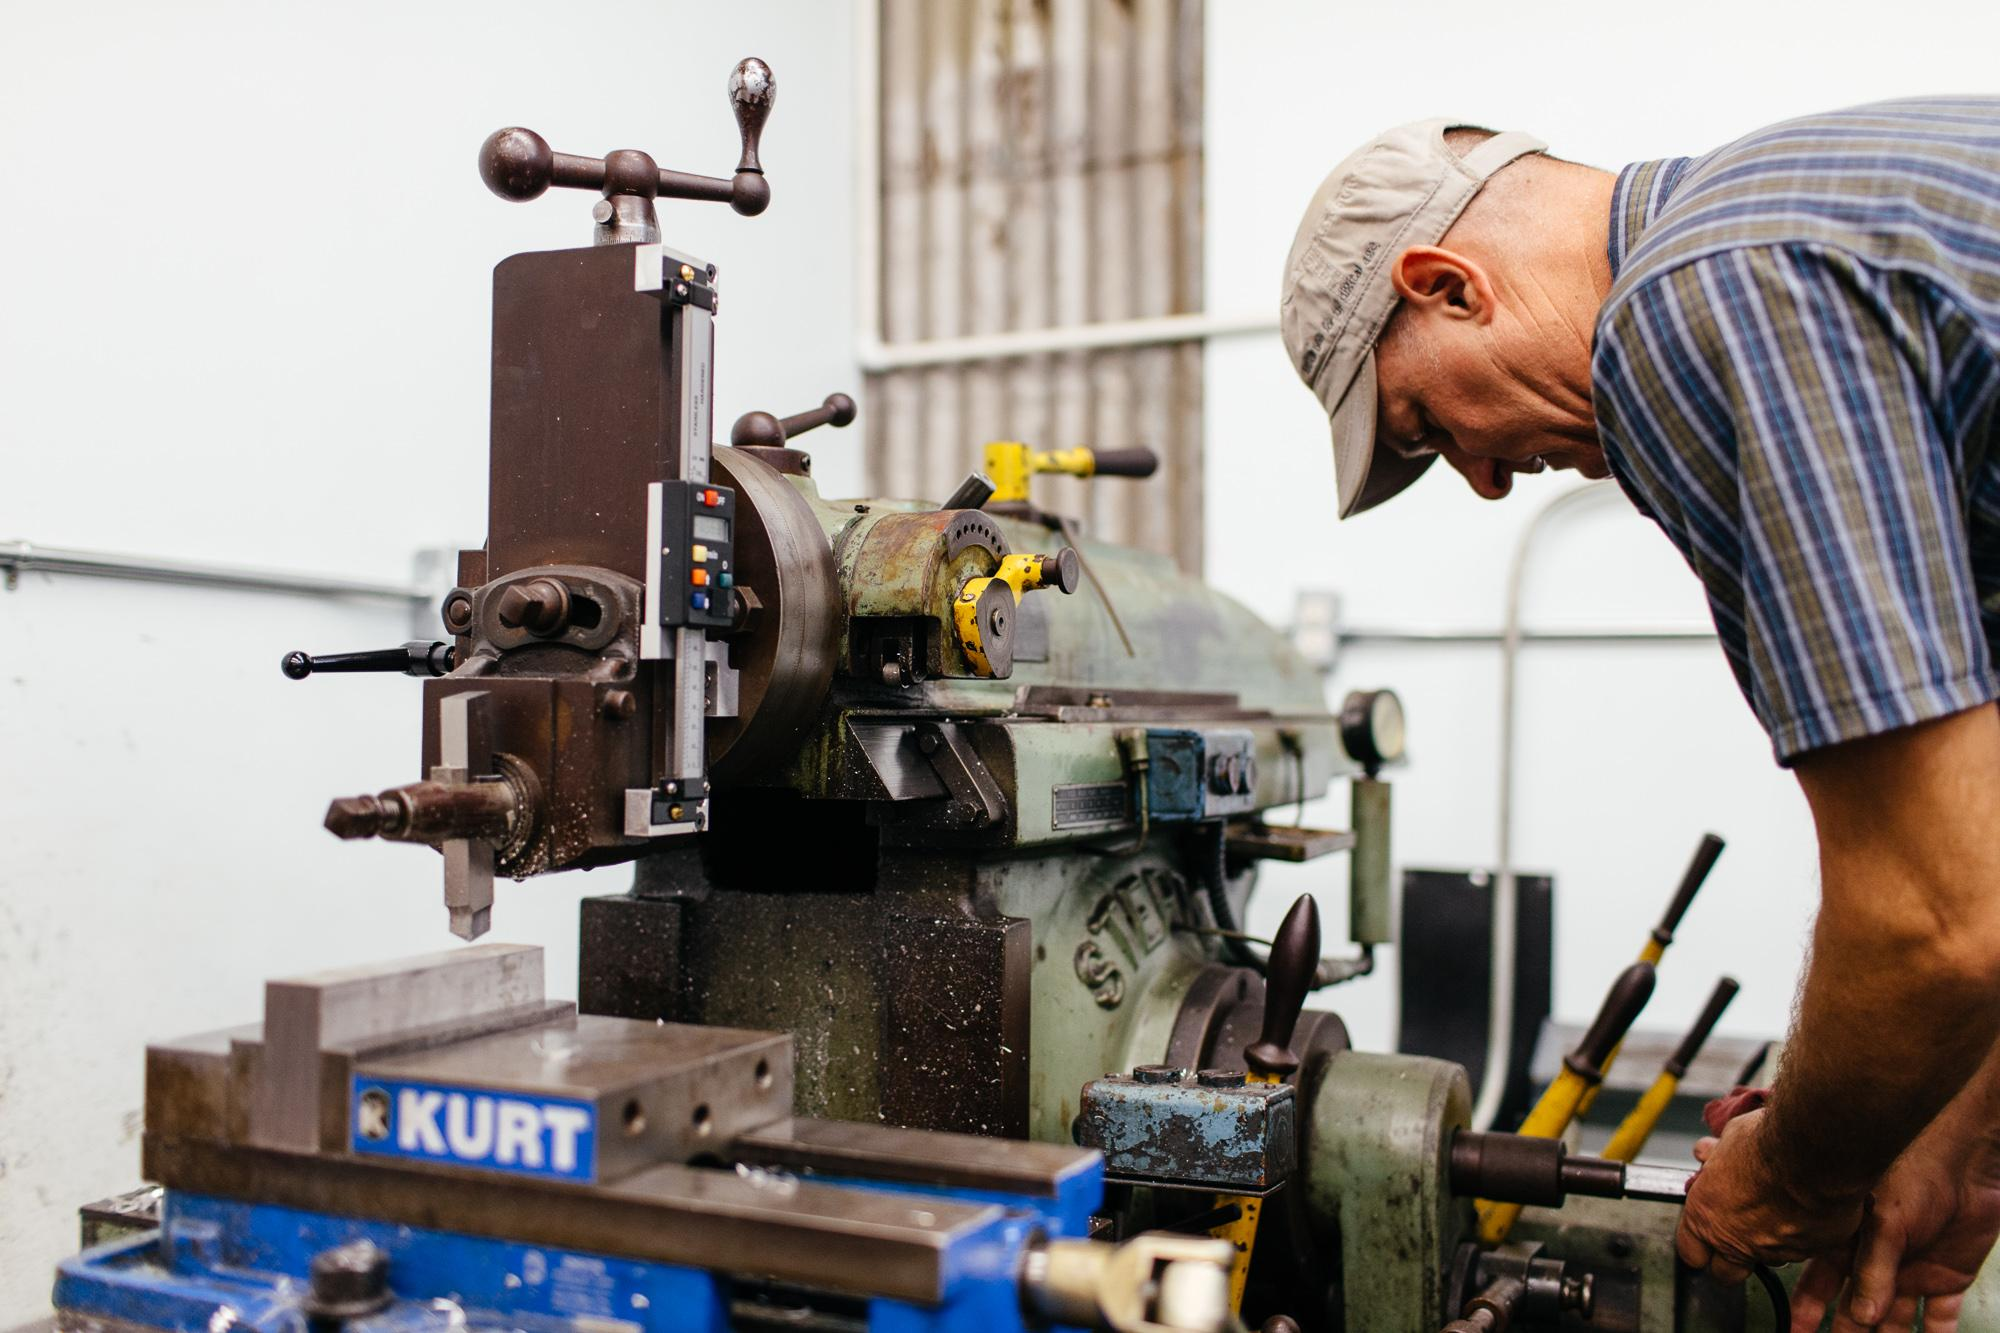 Paul, working on his shaper, a machine from WWII era production